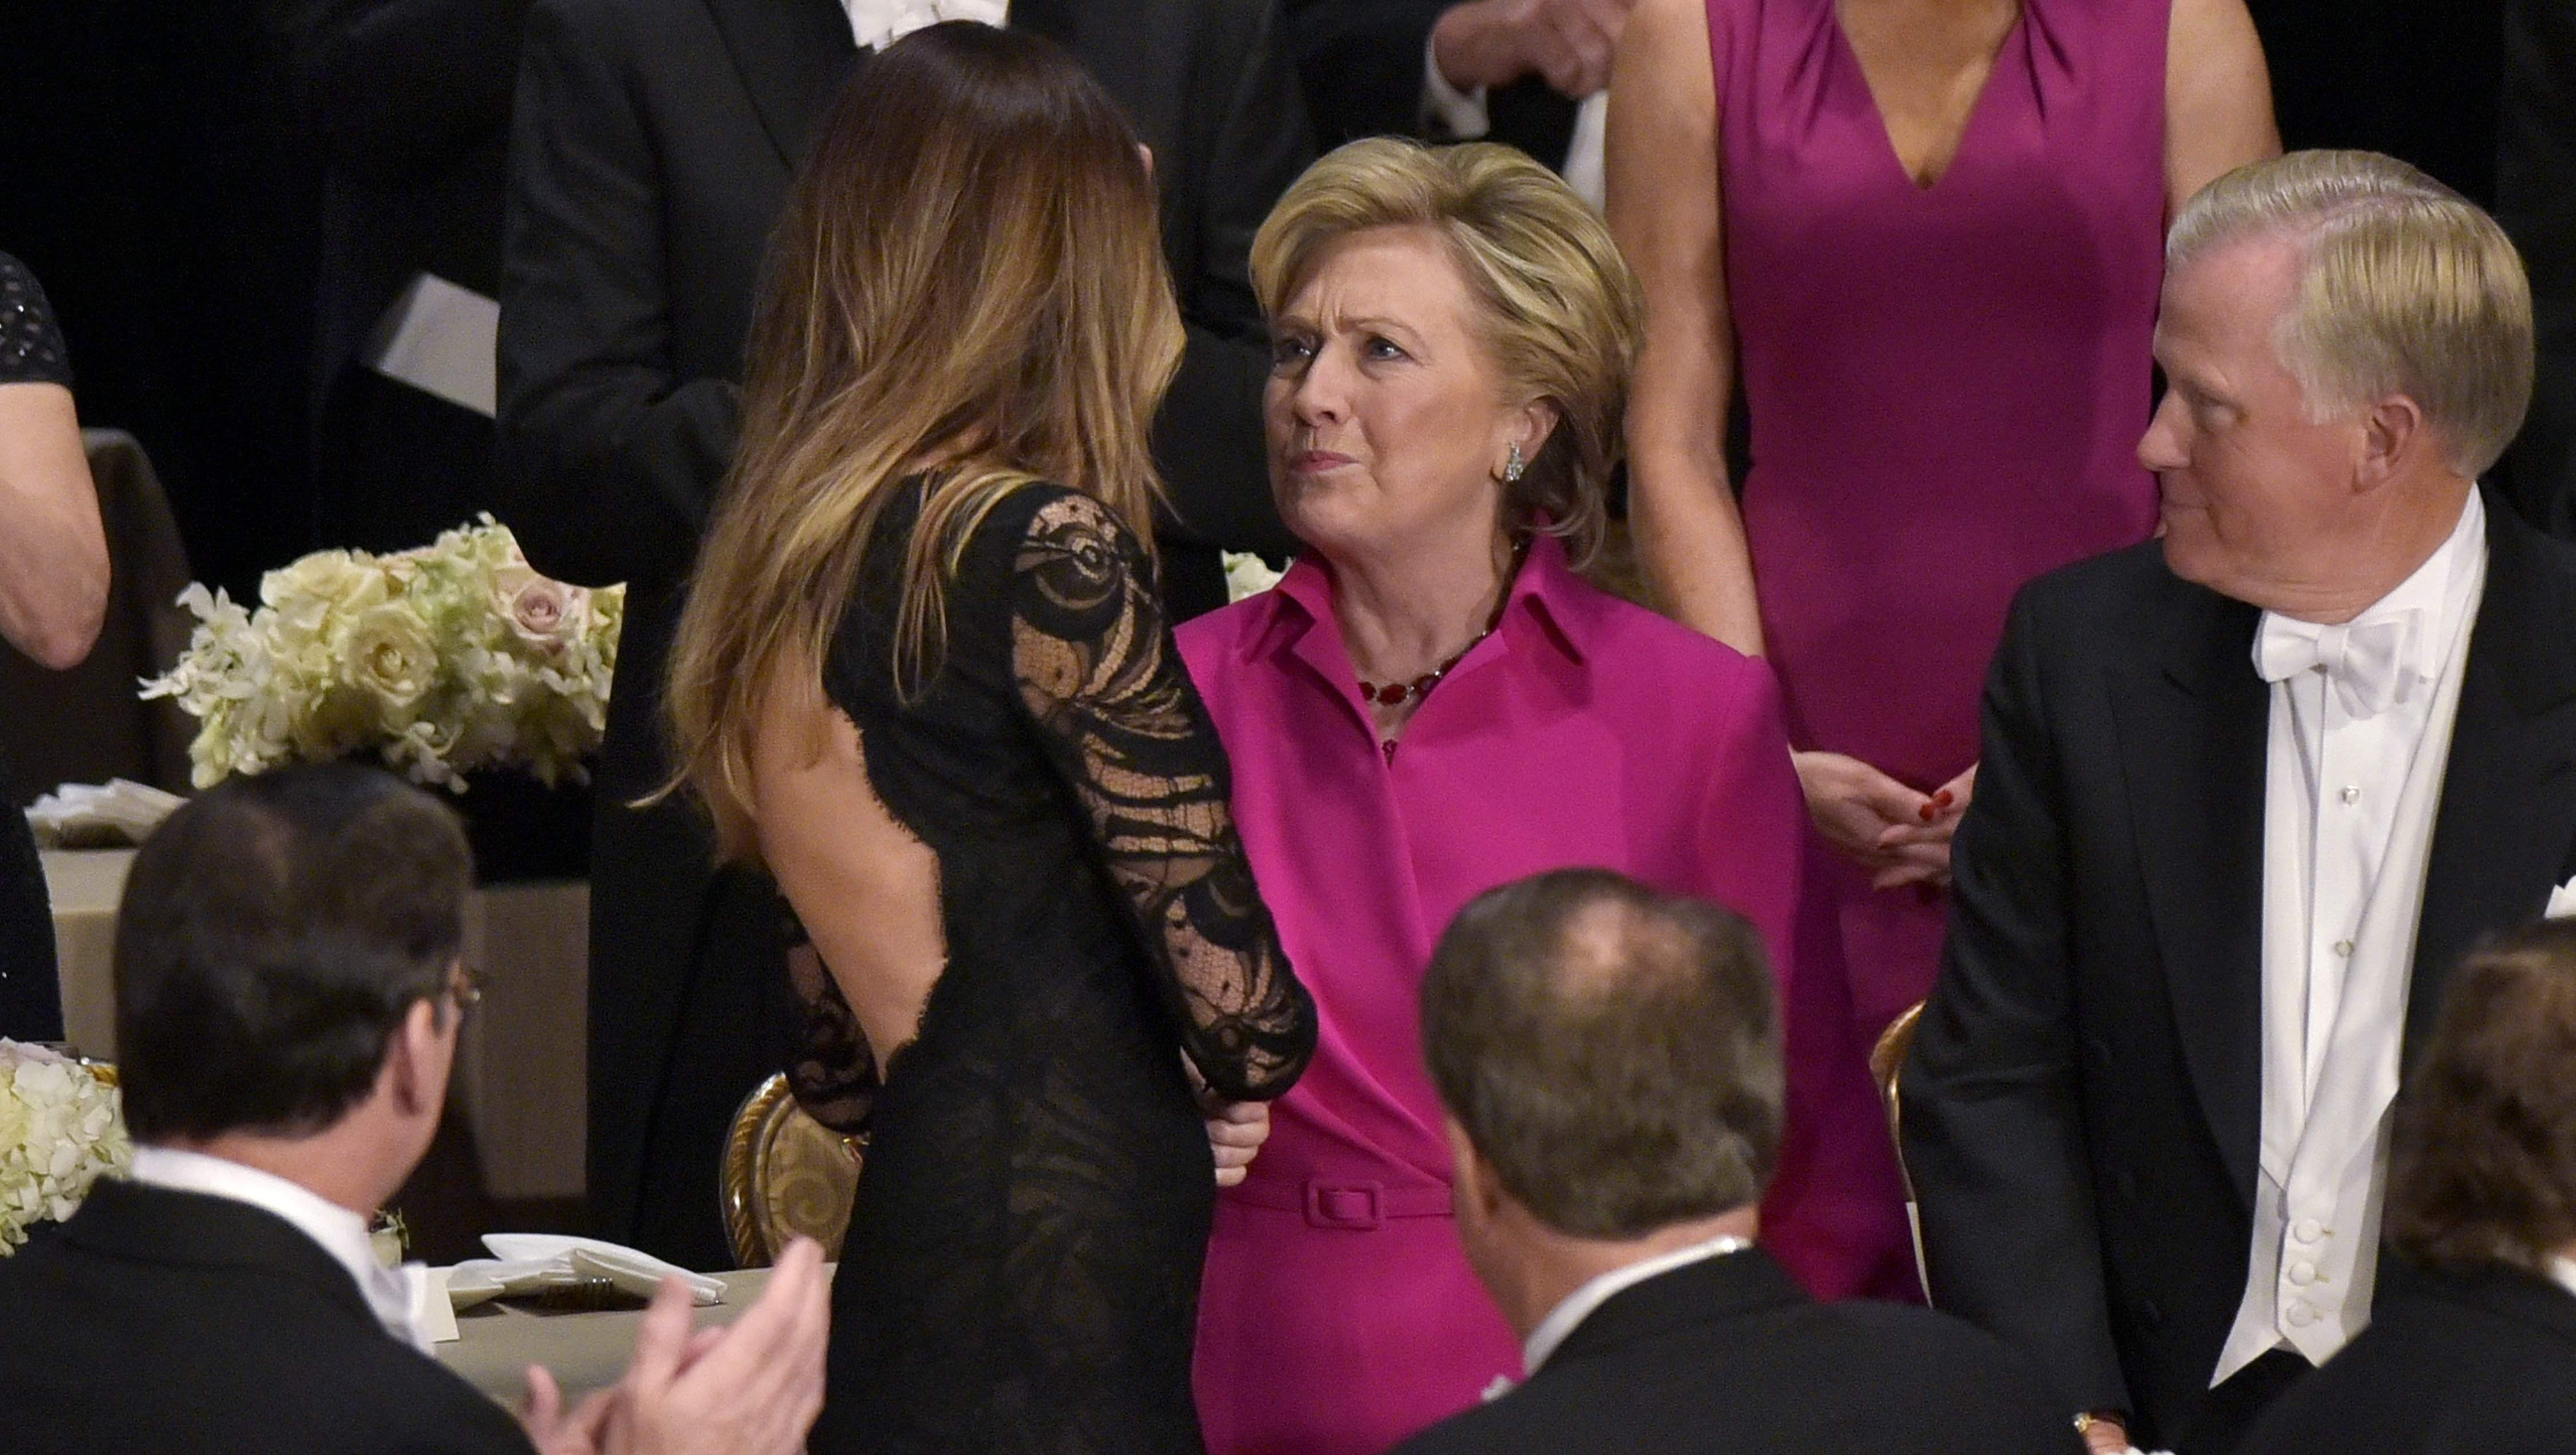 Hillary Clinton Ditches Pantsuit Stuns In Bright Pink Ralph Lauren Gown